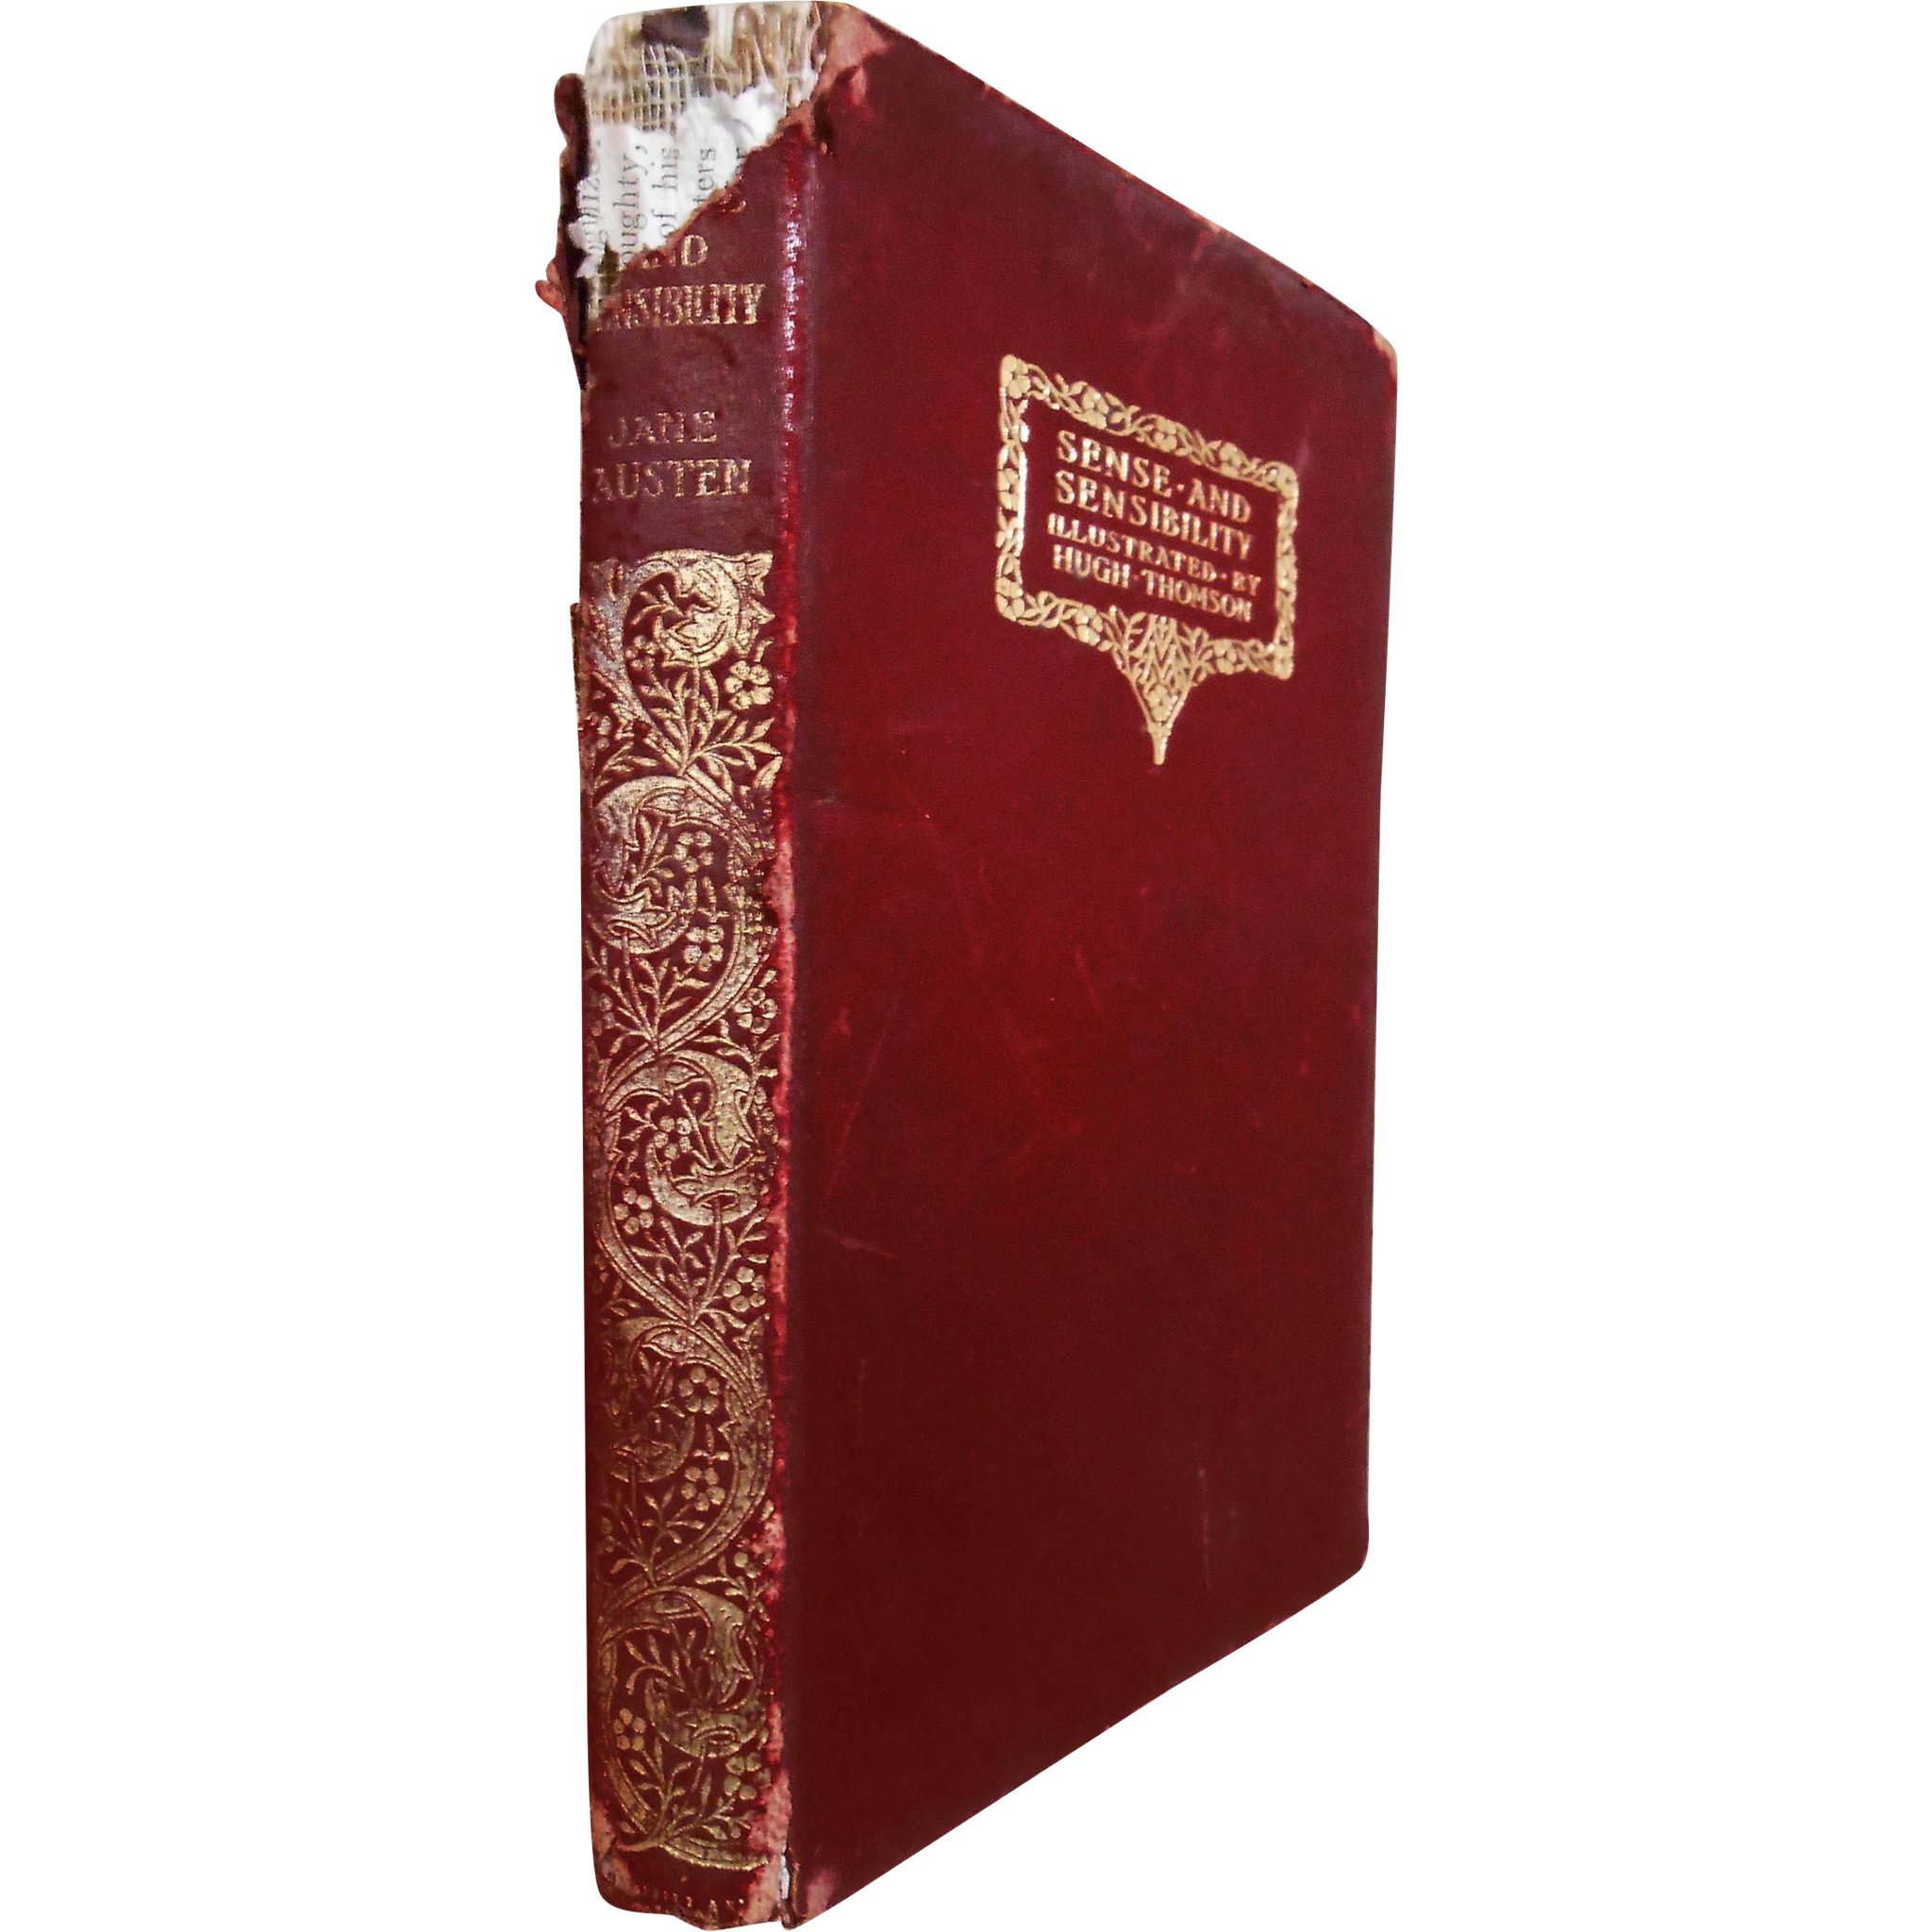 Jane Austen Sense and Sensibility 1912 Illustrated Leather Bound Gilt Title Spine